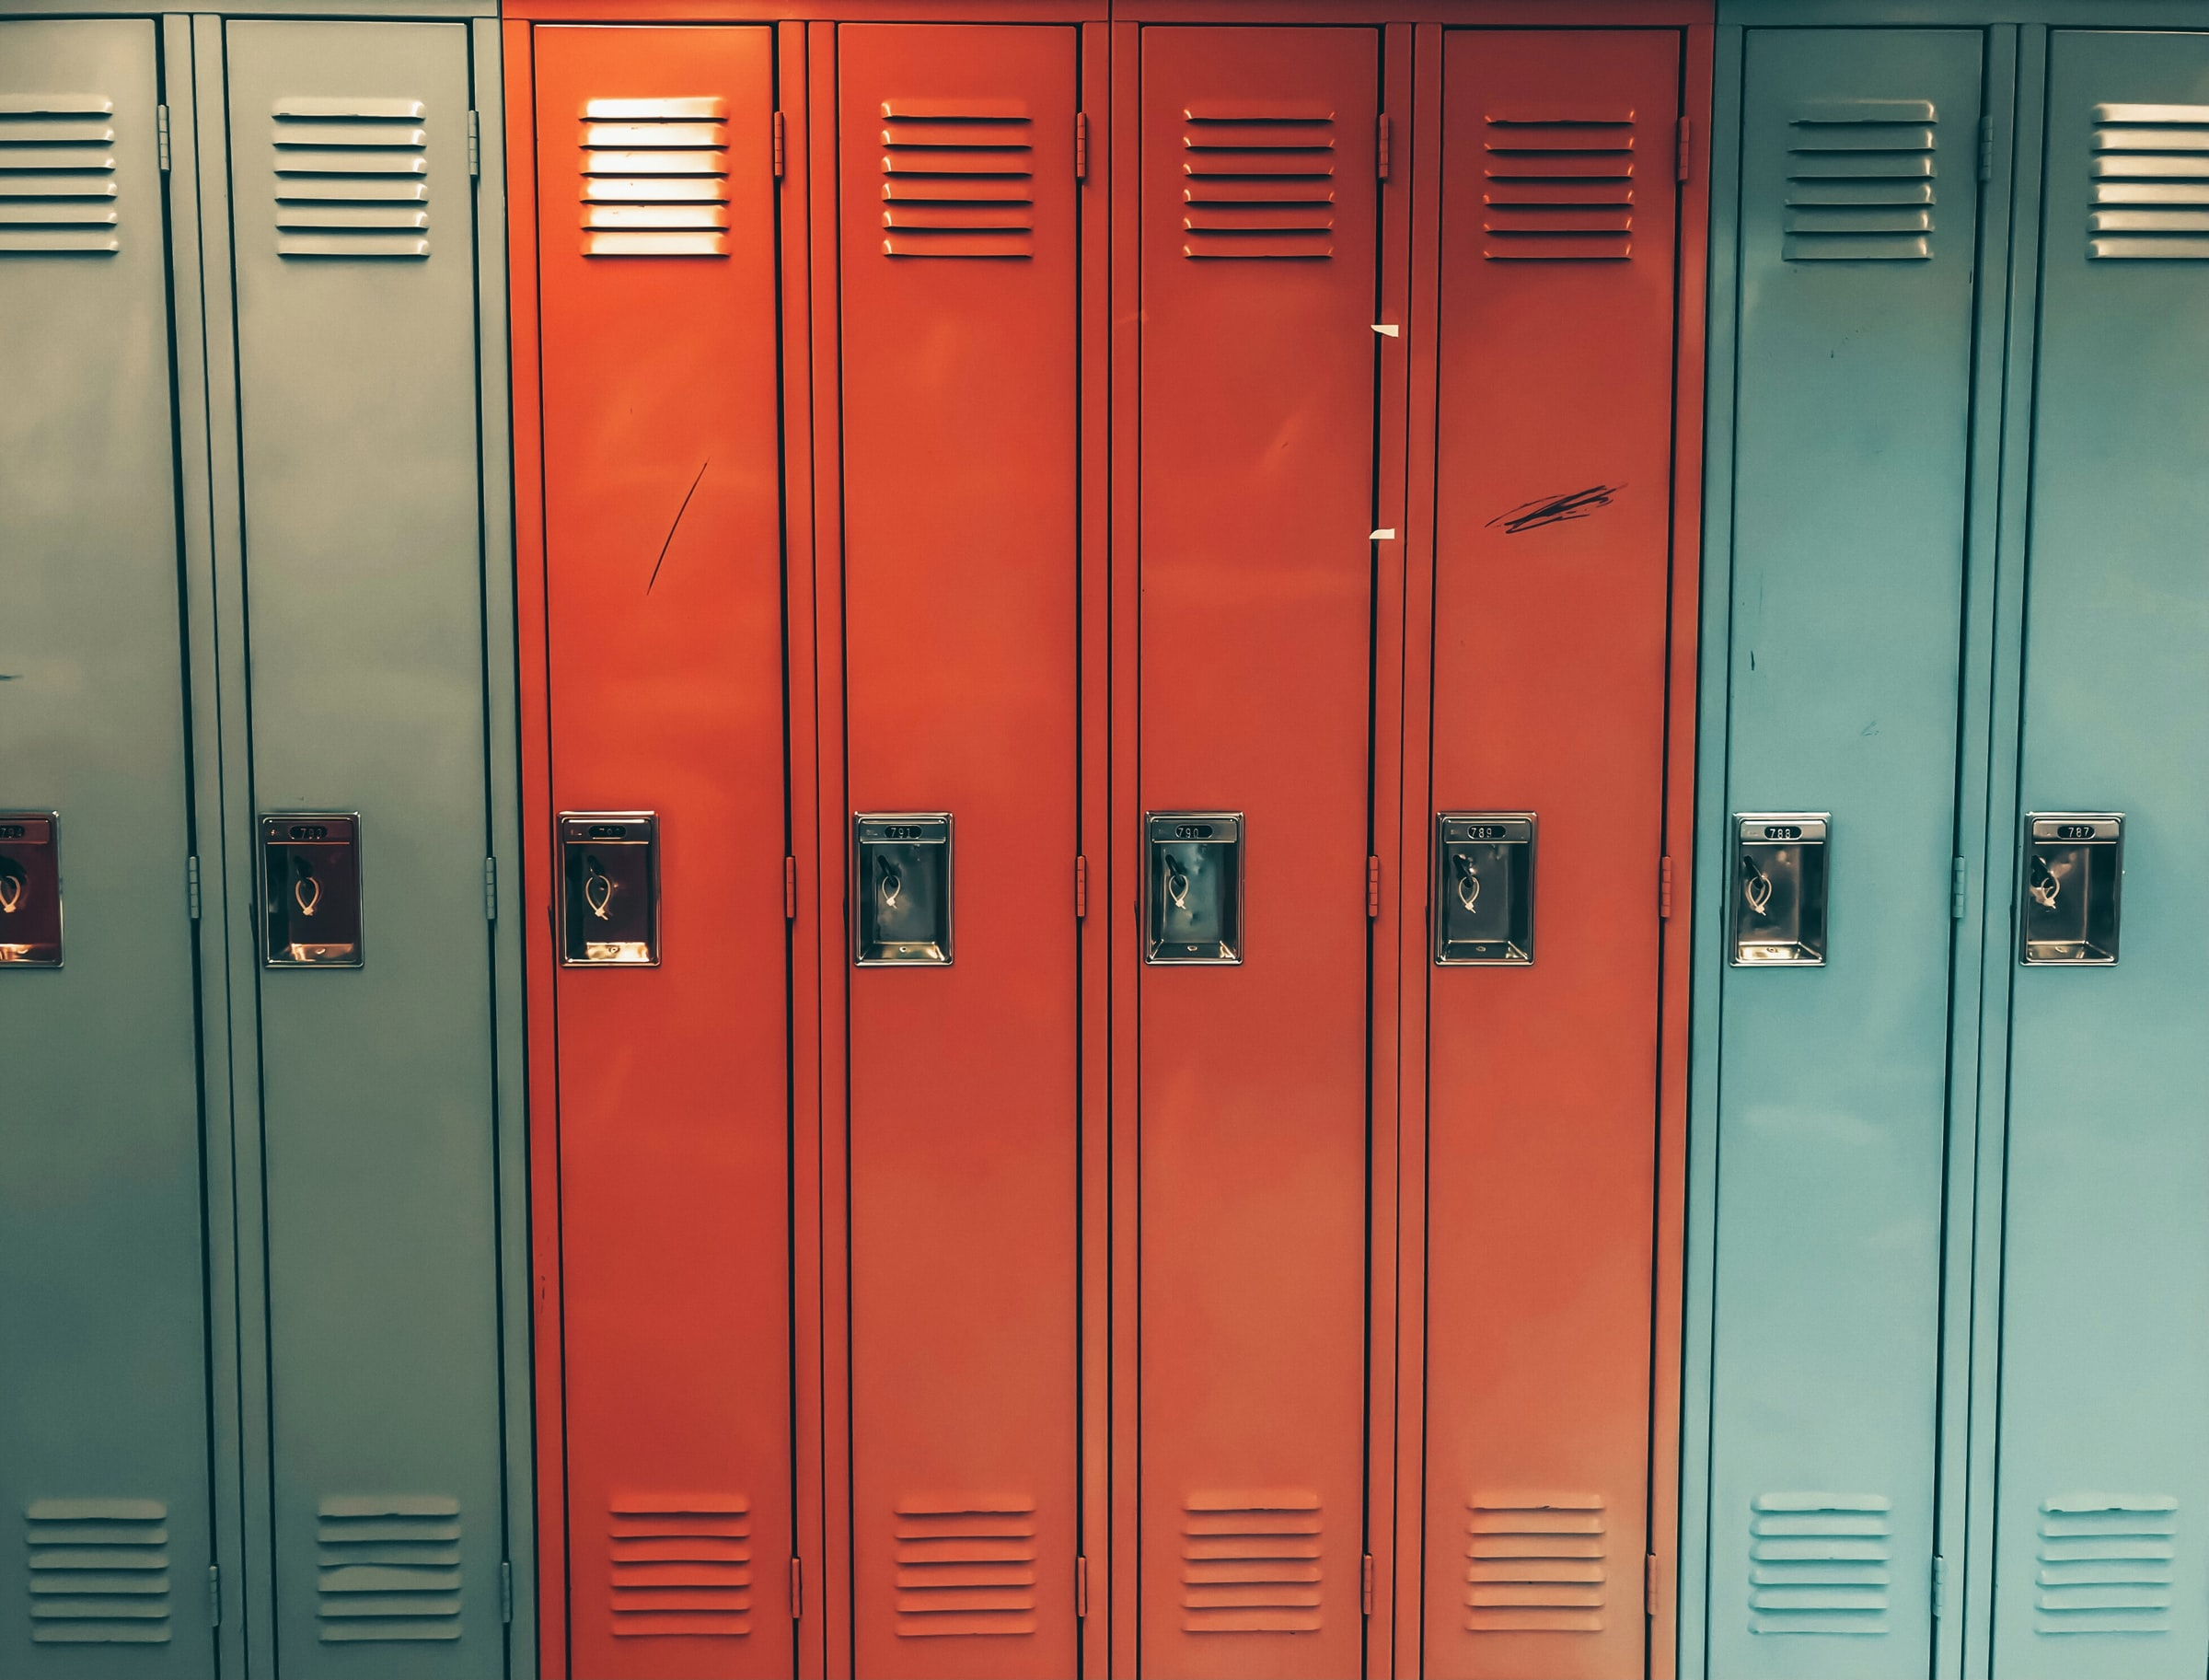 This image shows a series of school lockers in aqua and red.